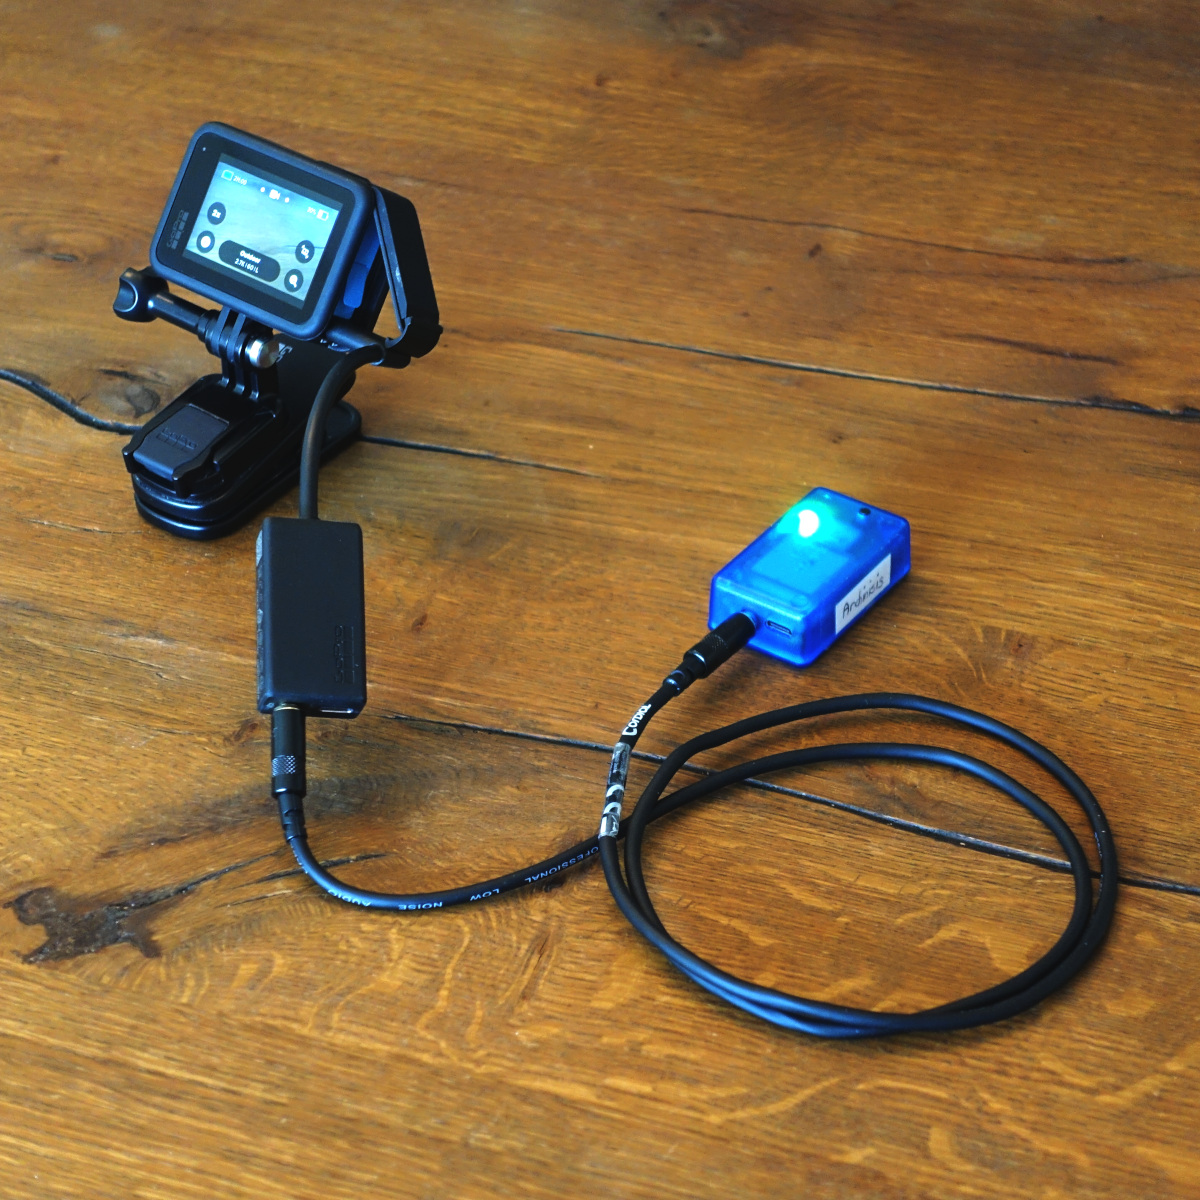 Our video sync unit connected to a GoPro camera.